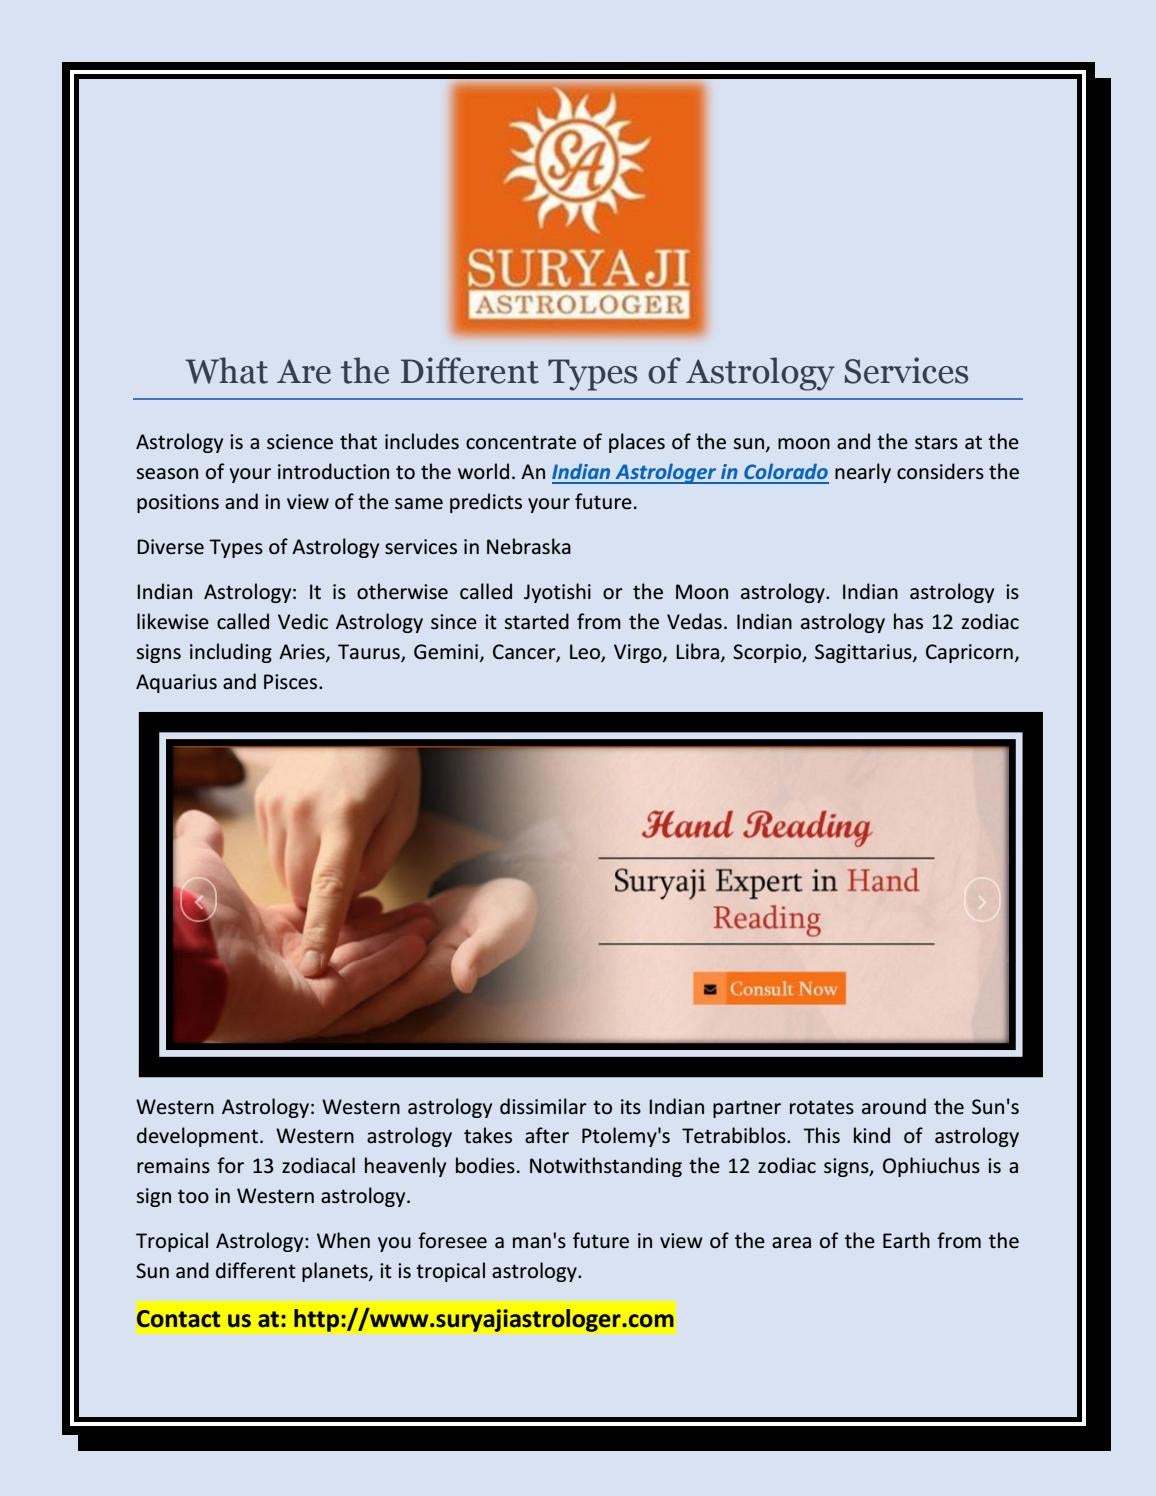 What Are the Different Types of Astrology Services ? by SURYA JI